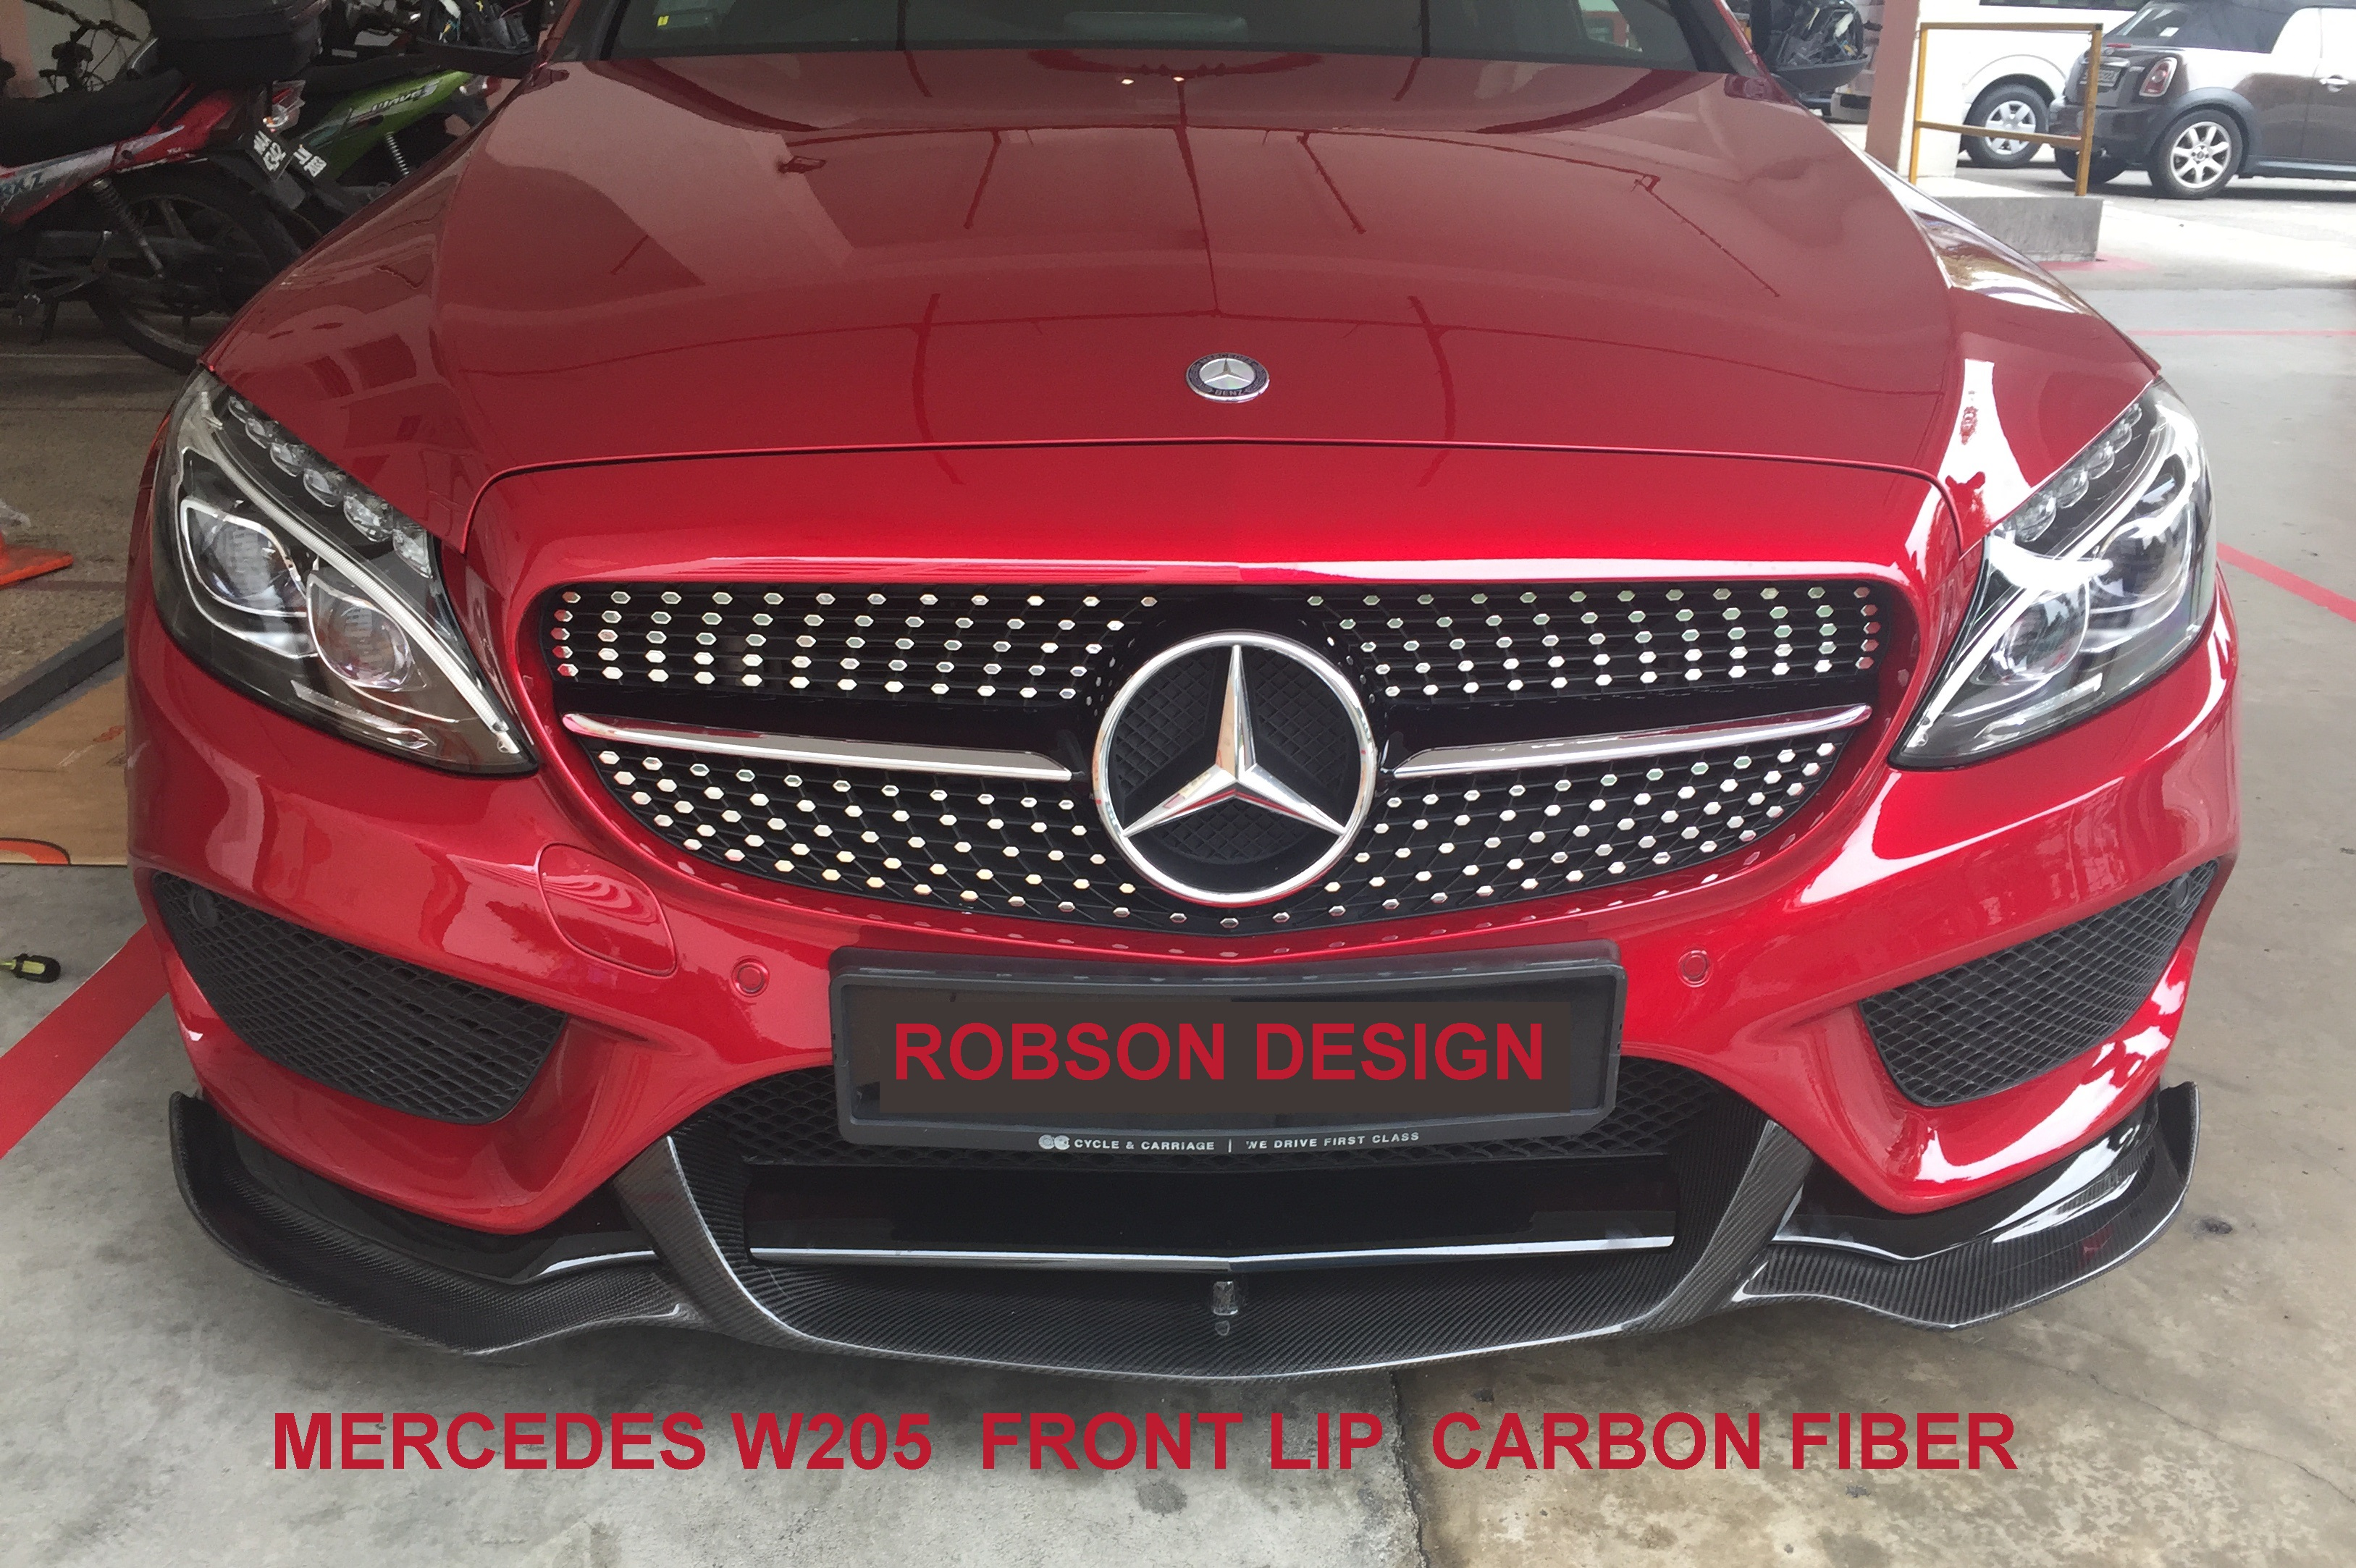 Mercedes benz c class c63 w205 amg front lip robson for Mercedes benz c300 aftermarket accessories